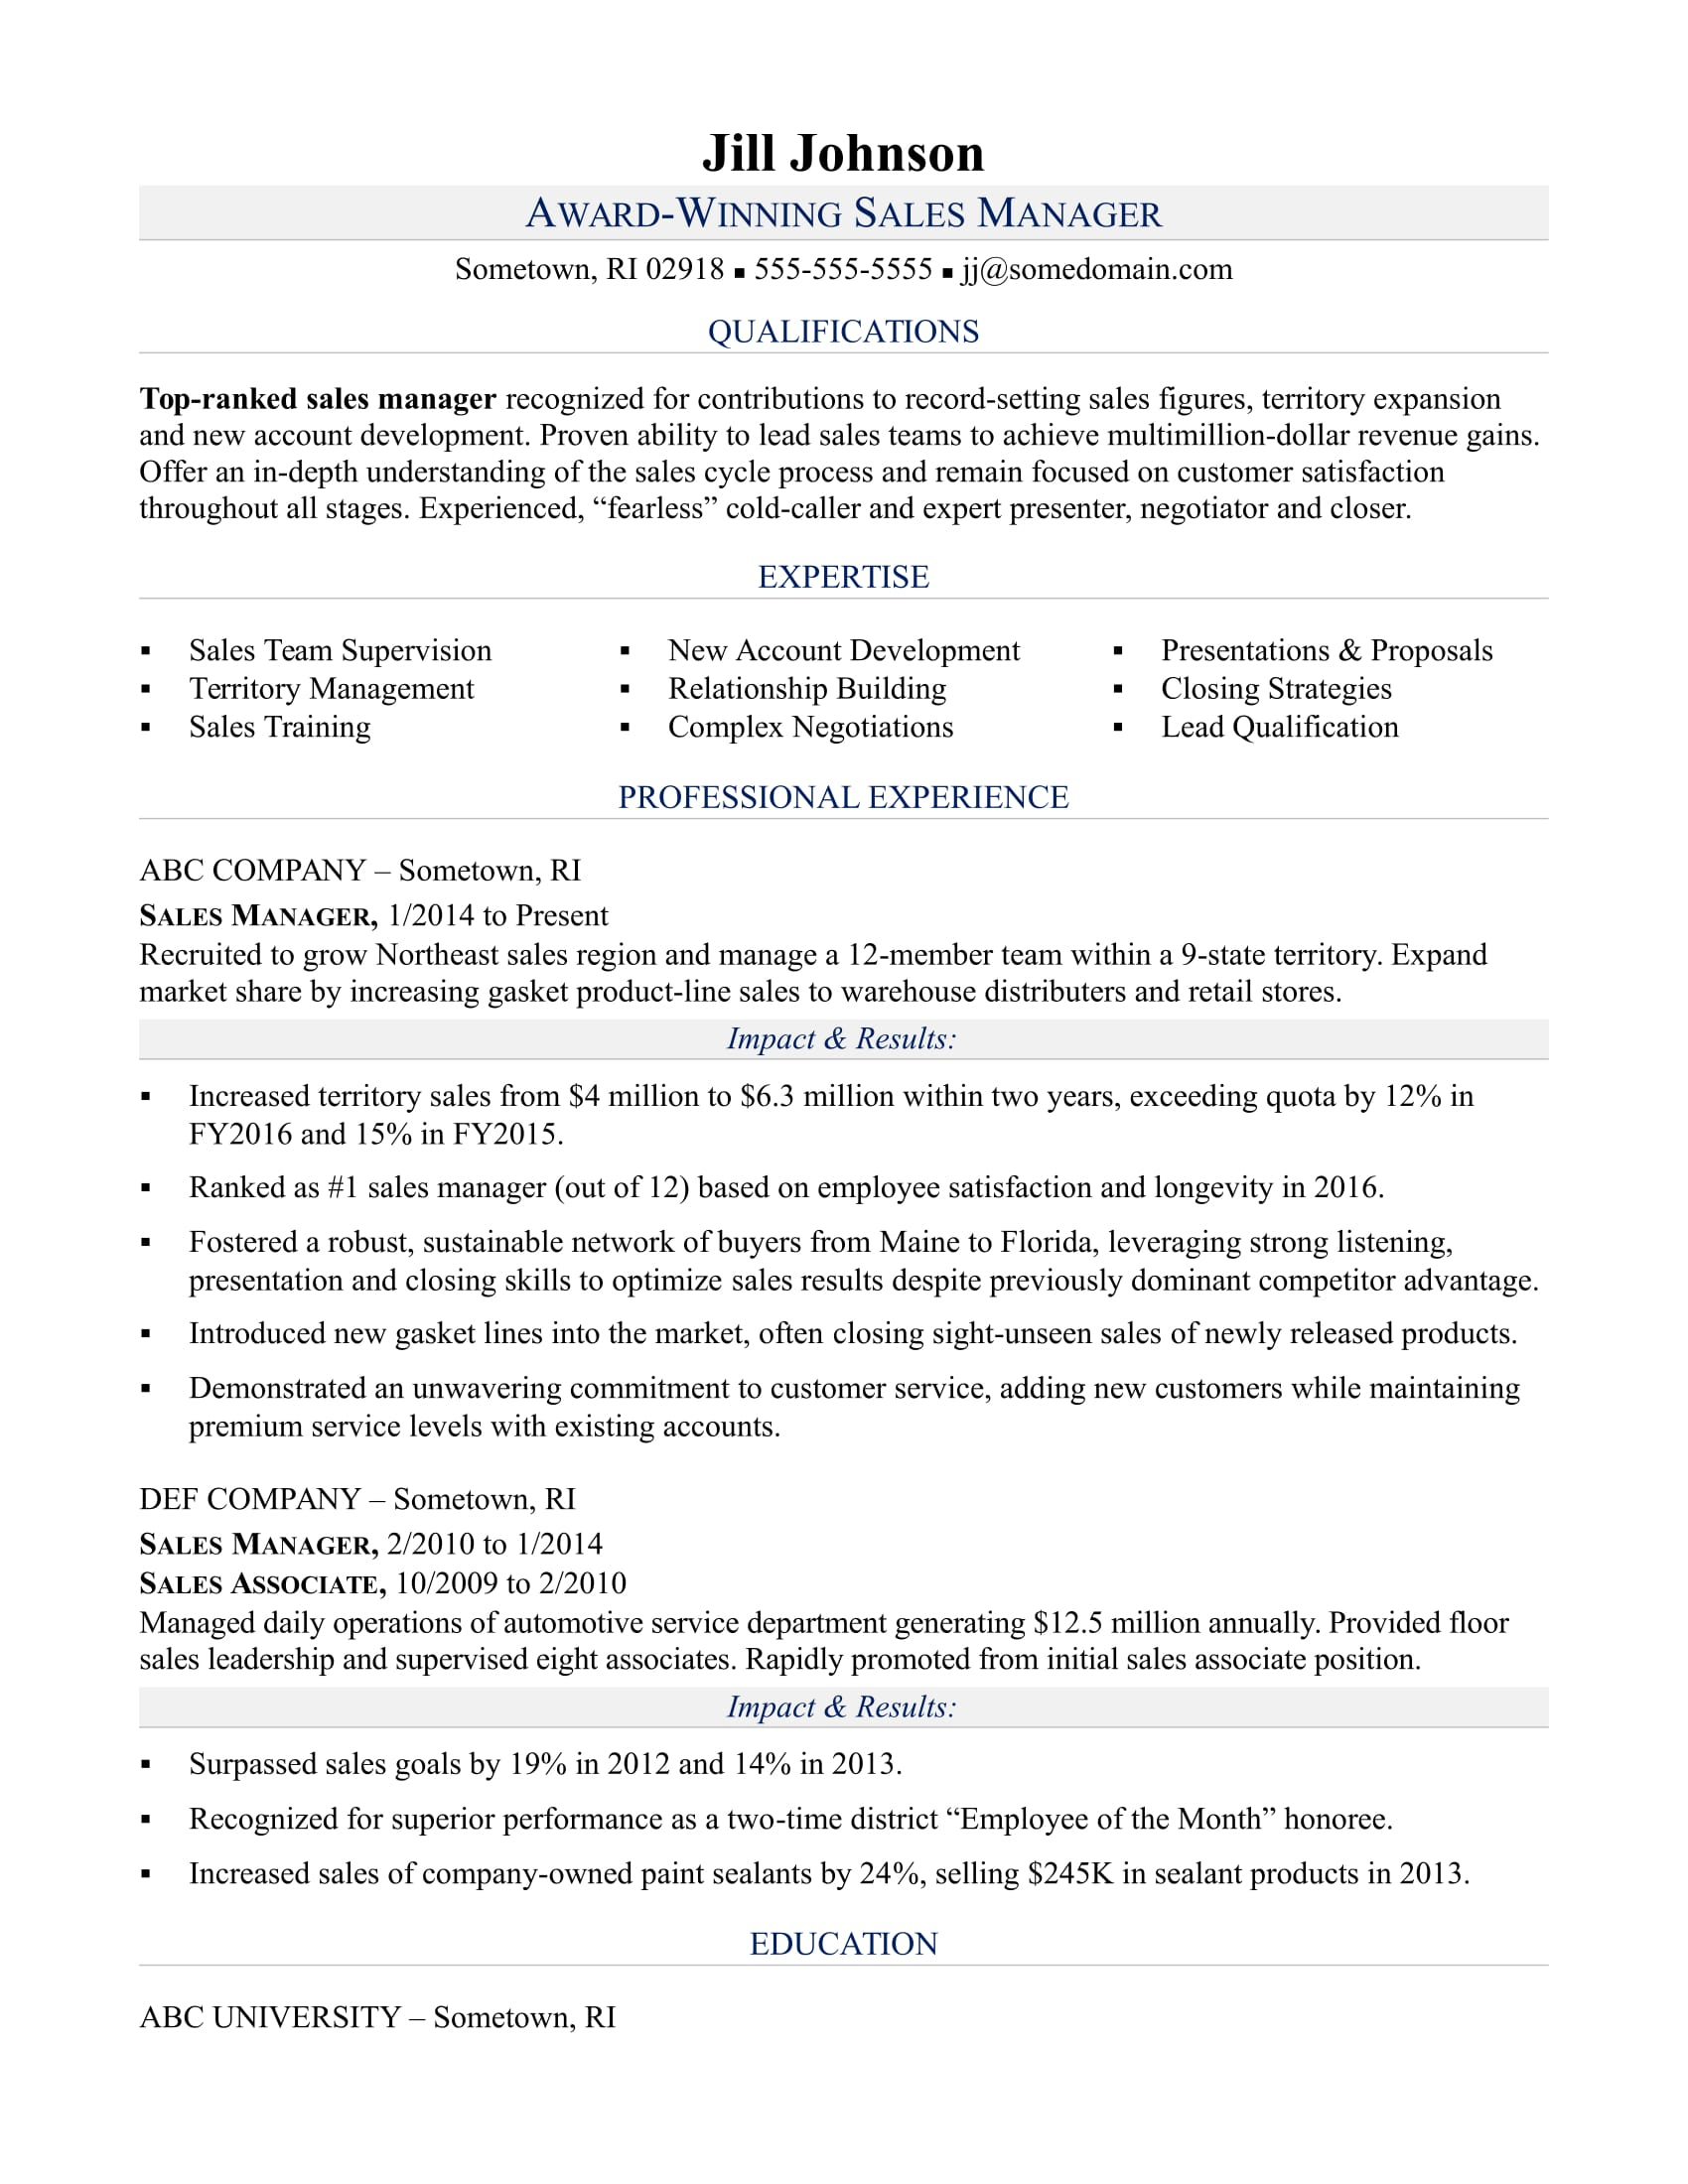 Sample Resume For A Sales Manager  Manager Resume